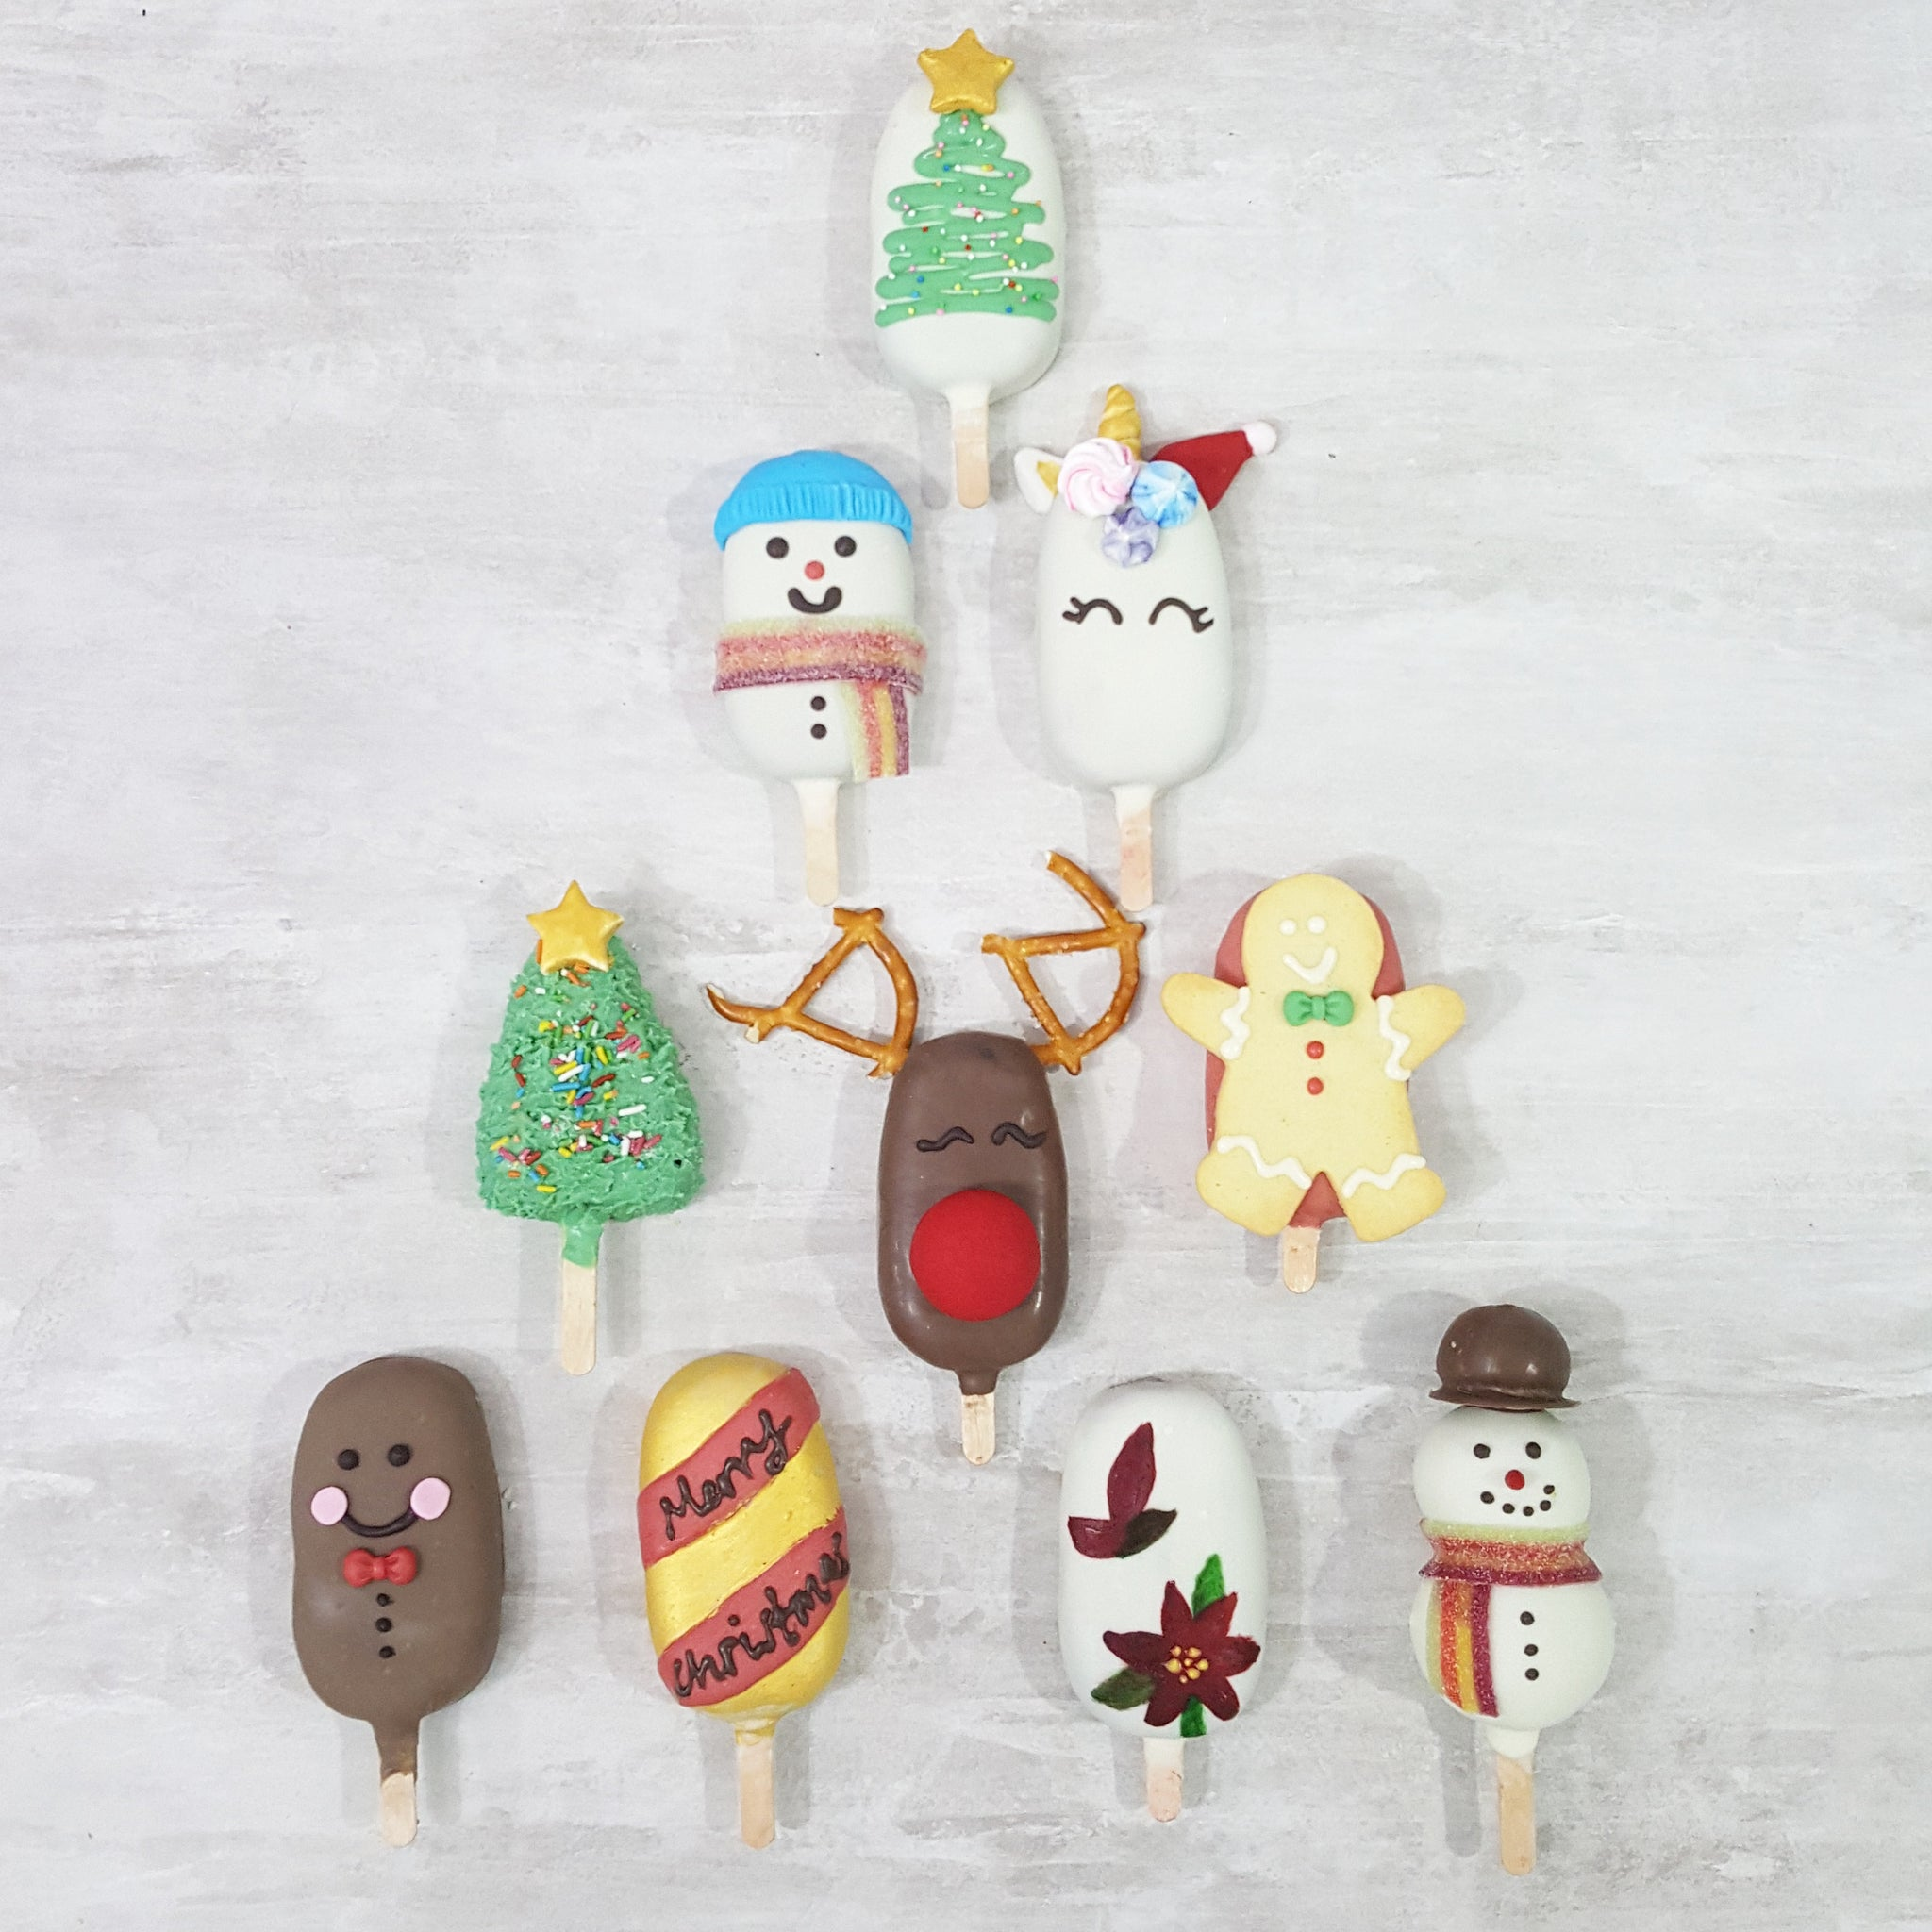 CHRISTMAS SPECIAL: Winter Cakepopsicles